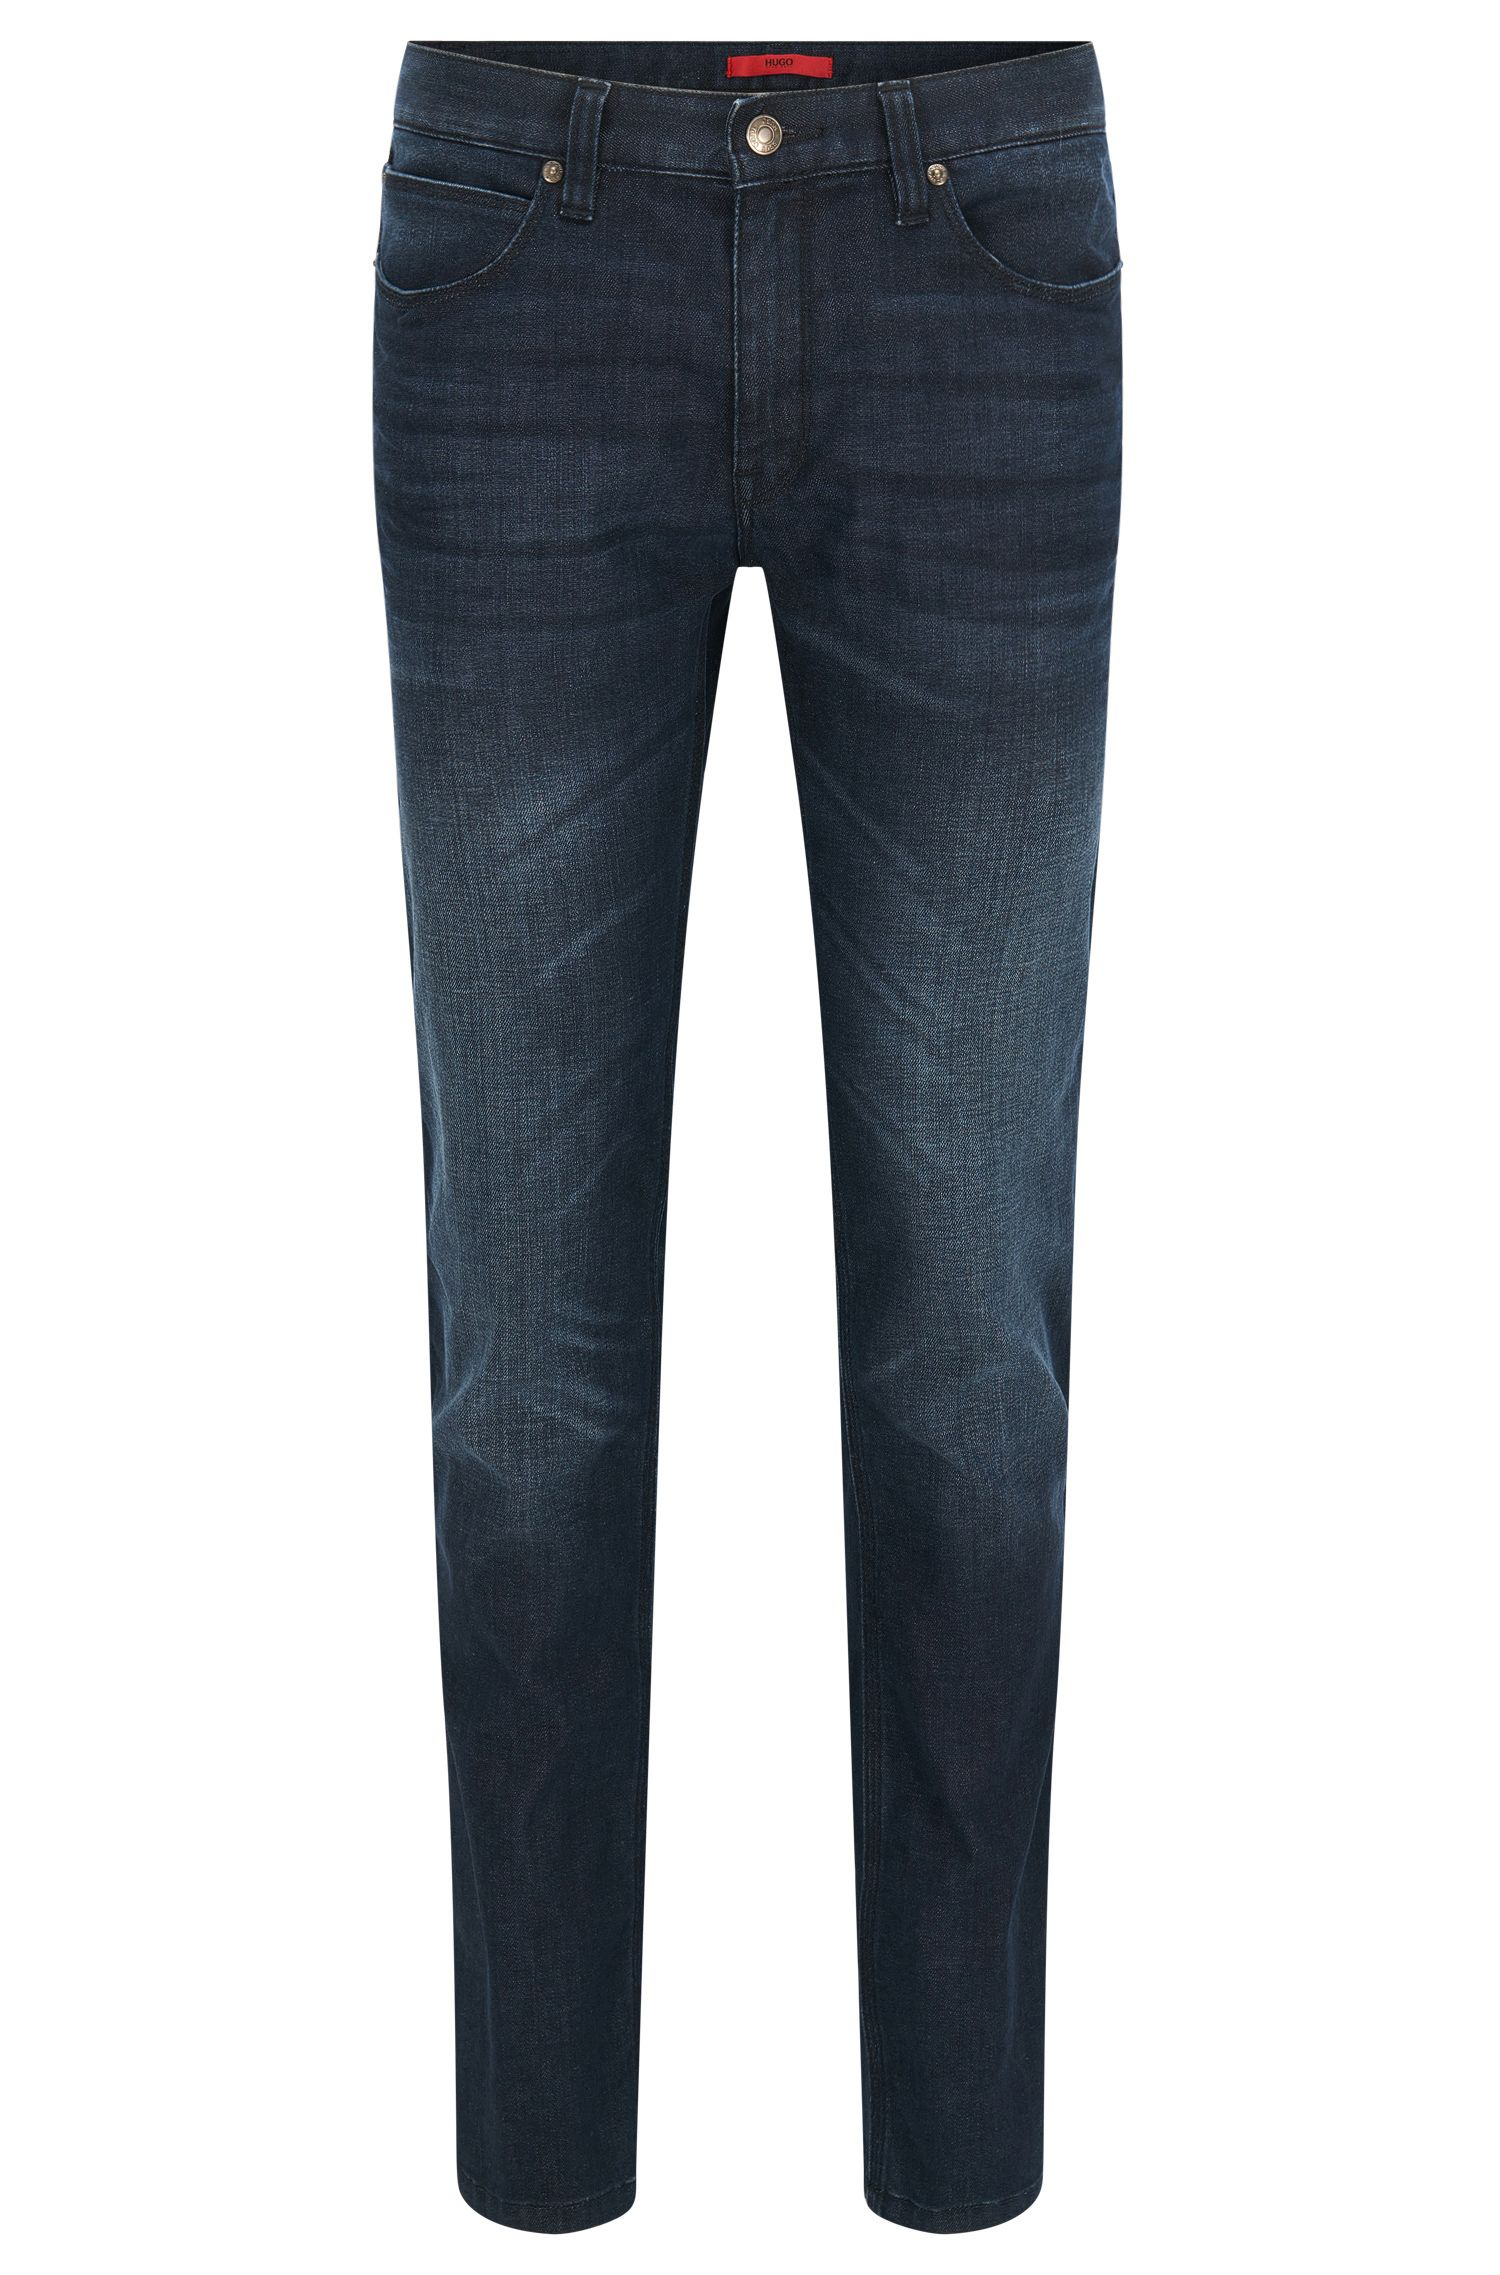 Jeans stone wash slim fit in denim elasticizzato by HUGO Uomo, Blu scuro